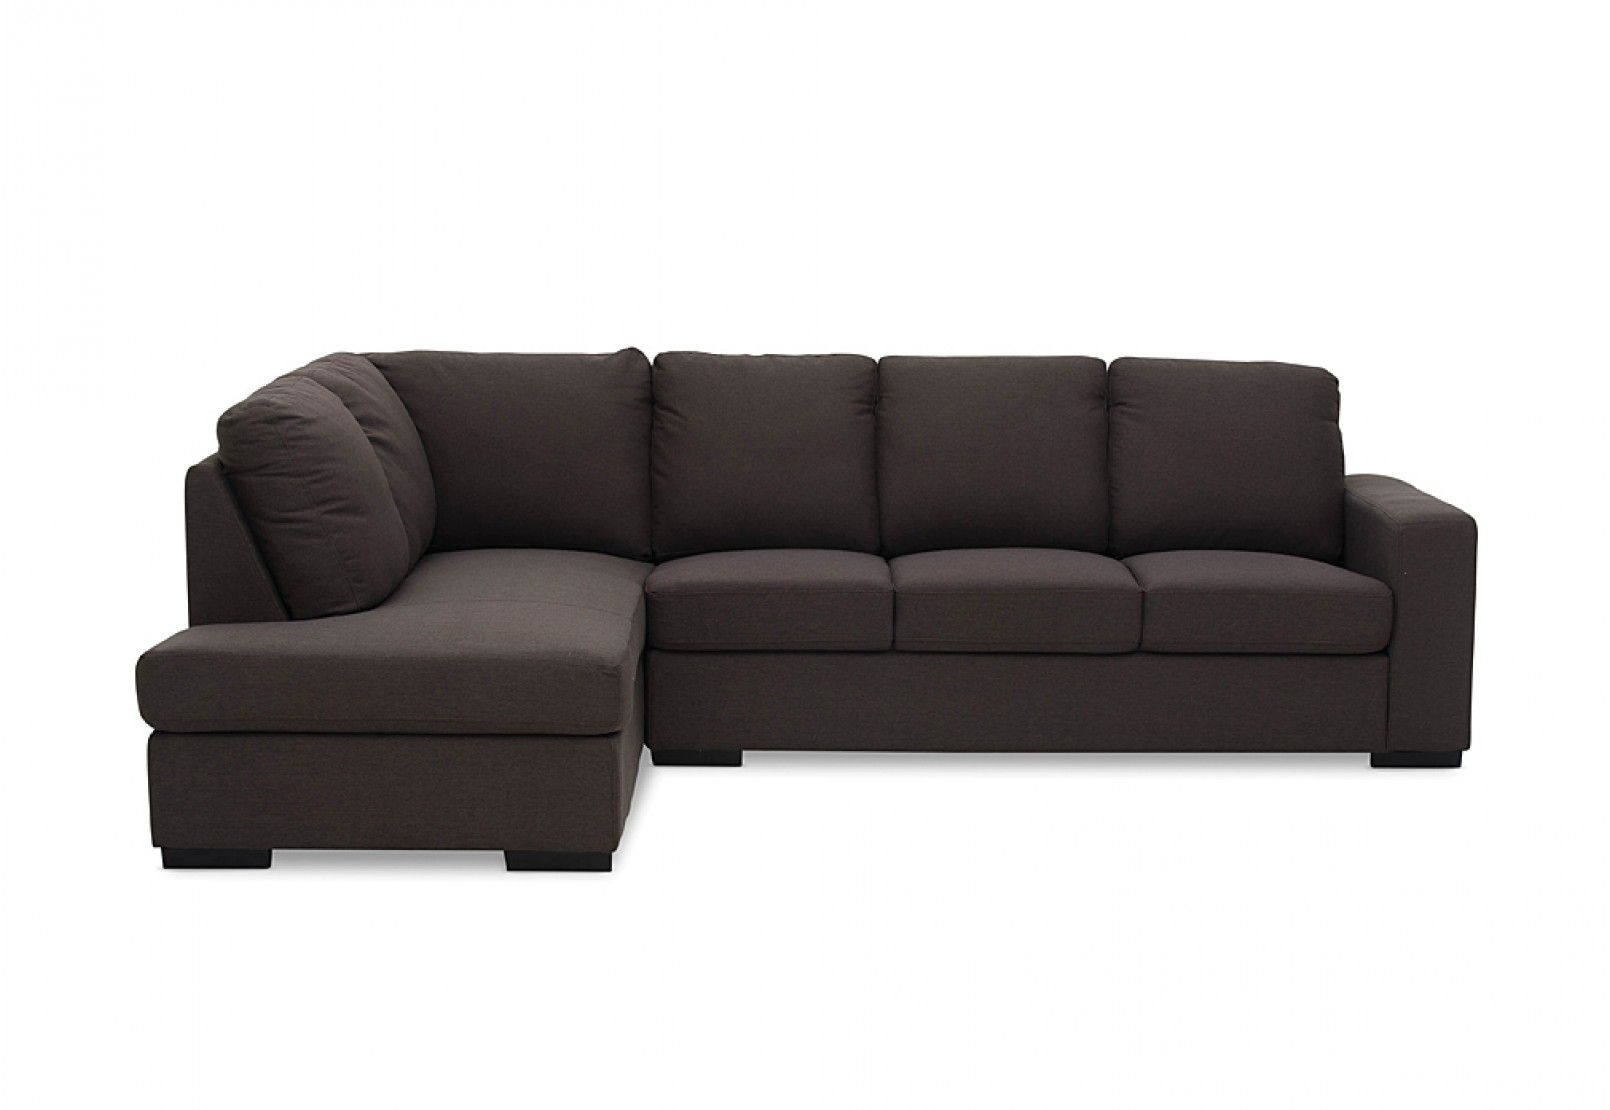 Fit the whole family with ease on the stylish and very affordable Nixon 4 seater chaise with left hand facing chaise.Pocket springs foam seat backing ...  sc 1 st  Pinterest : 4 seater chaise - Sectionals, Sofas & Couches